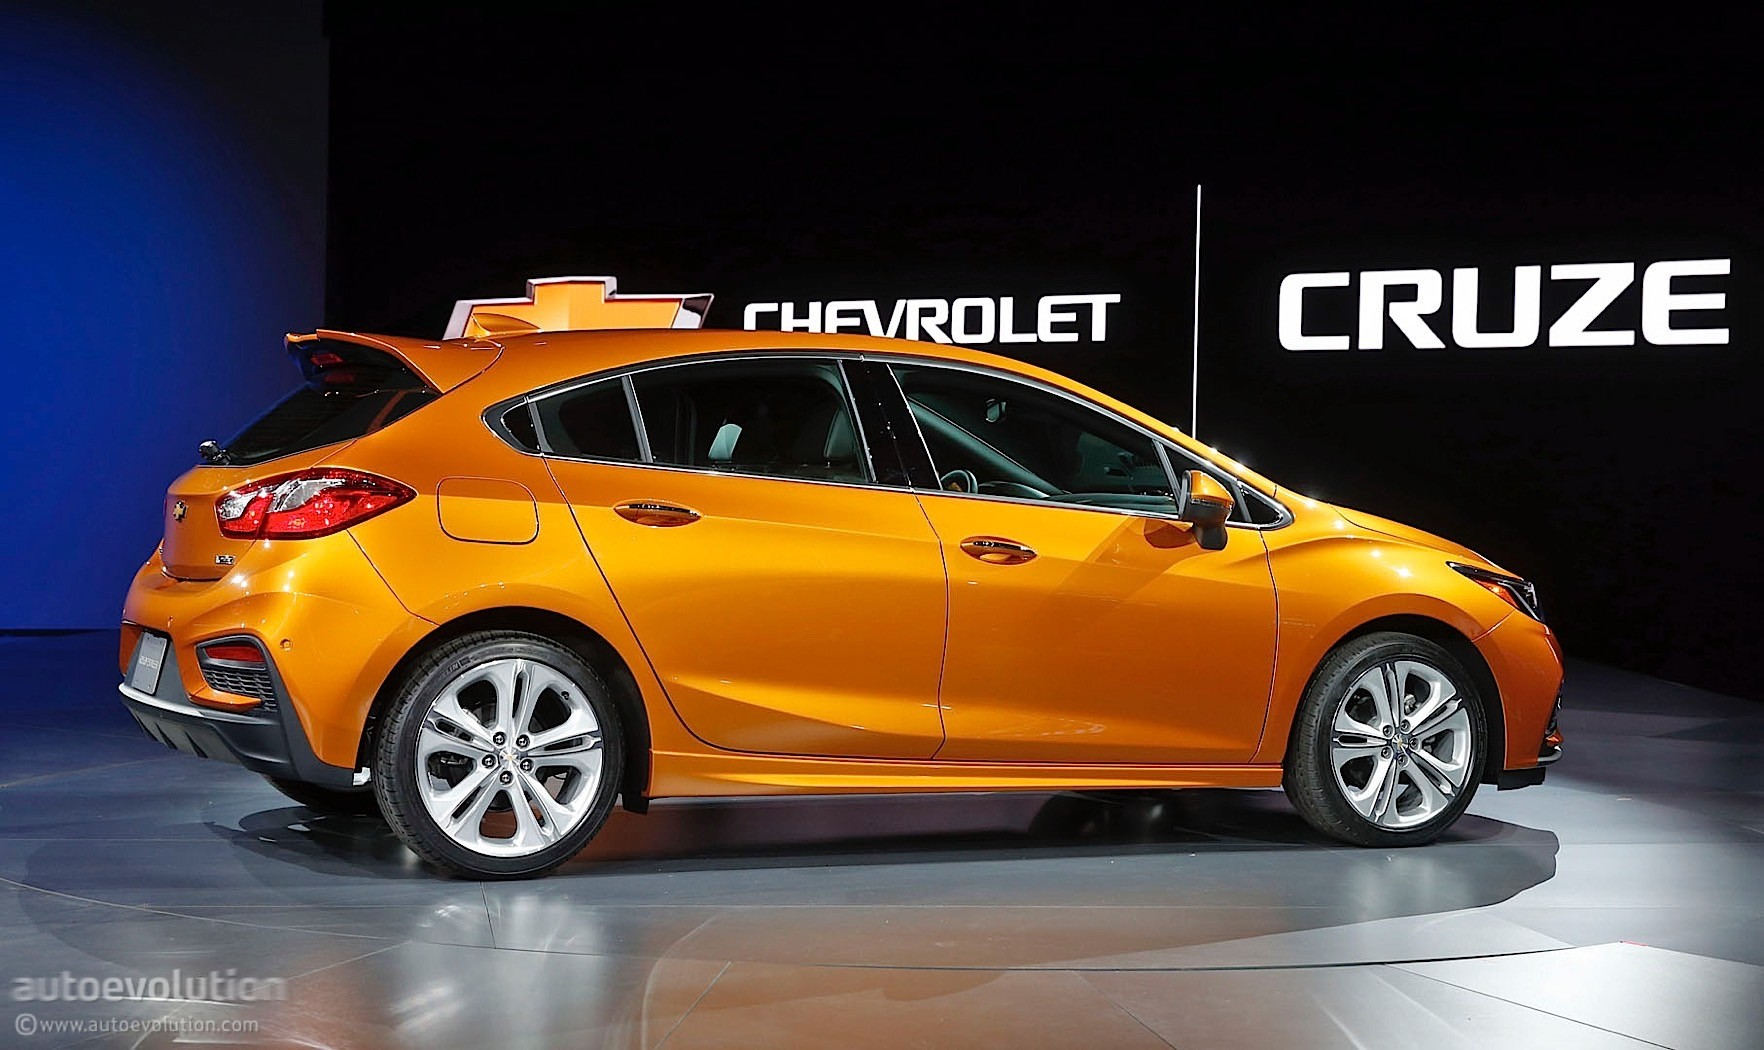 2017 Chevrolet Cruze Hatchback Priced From $22,190 - autoevolution